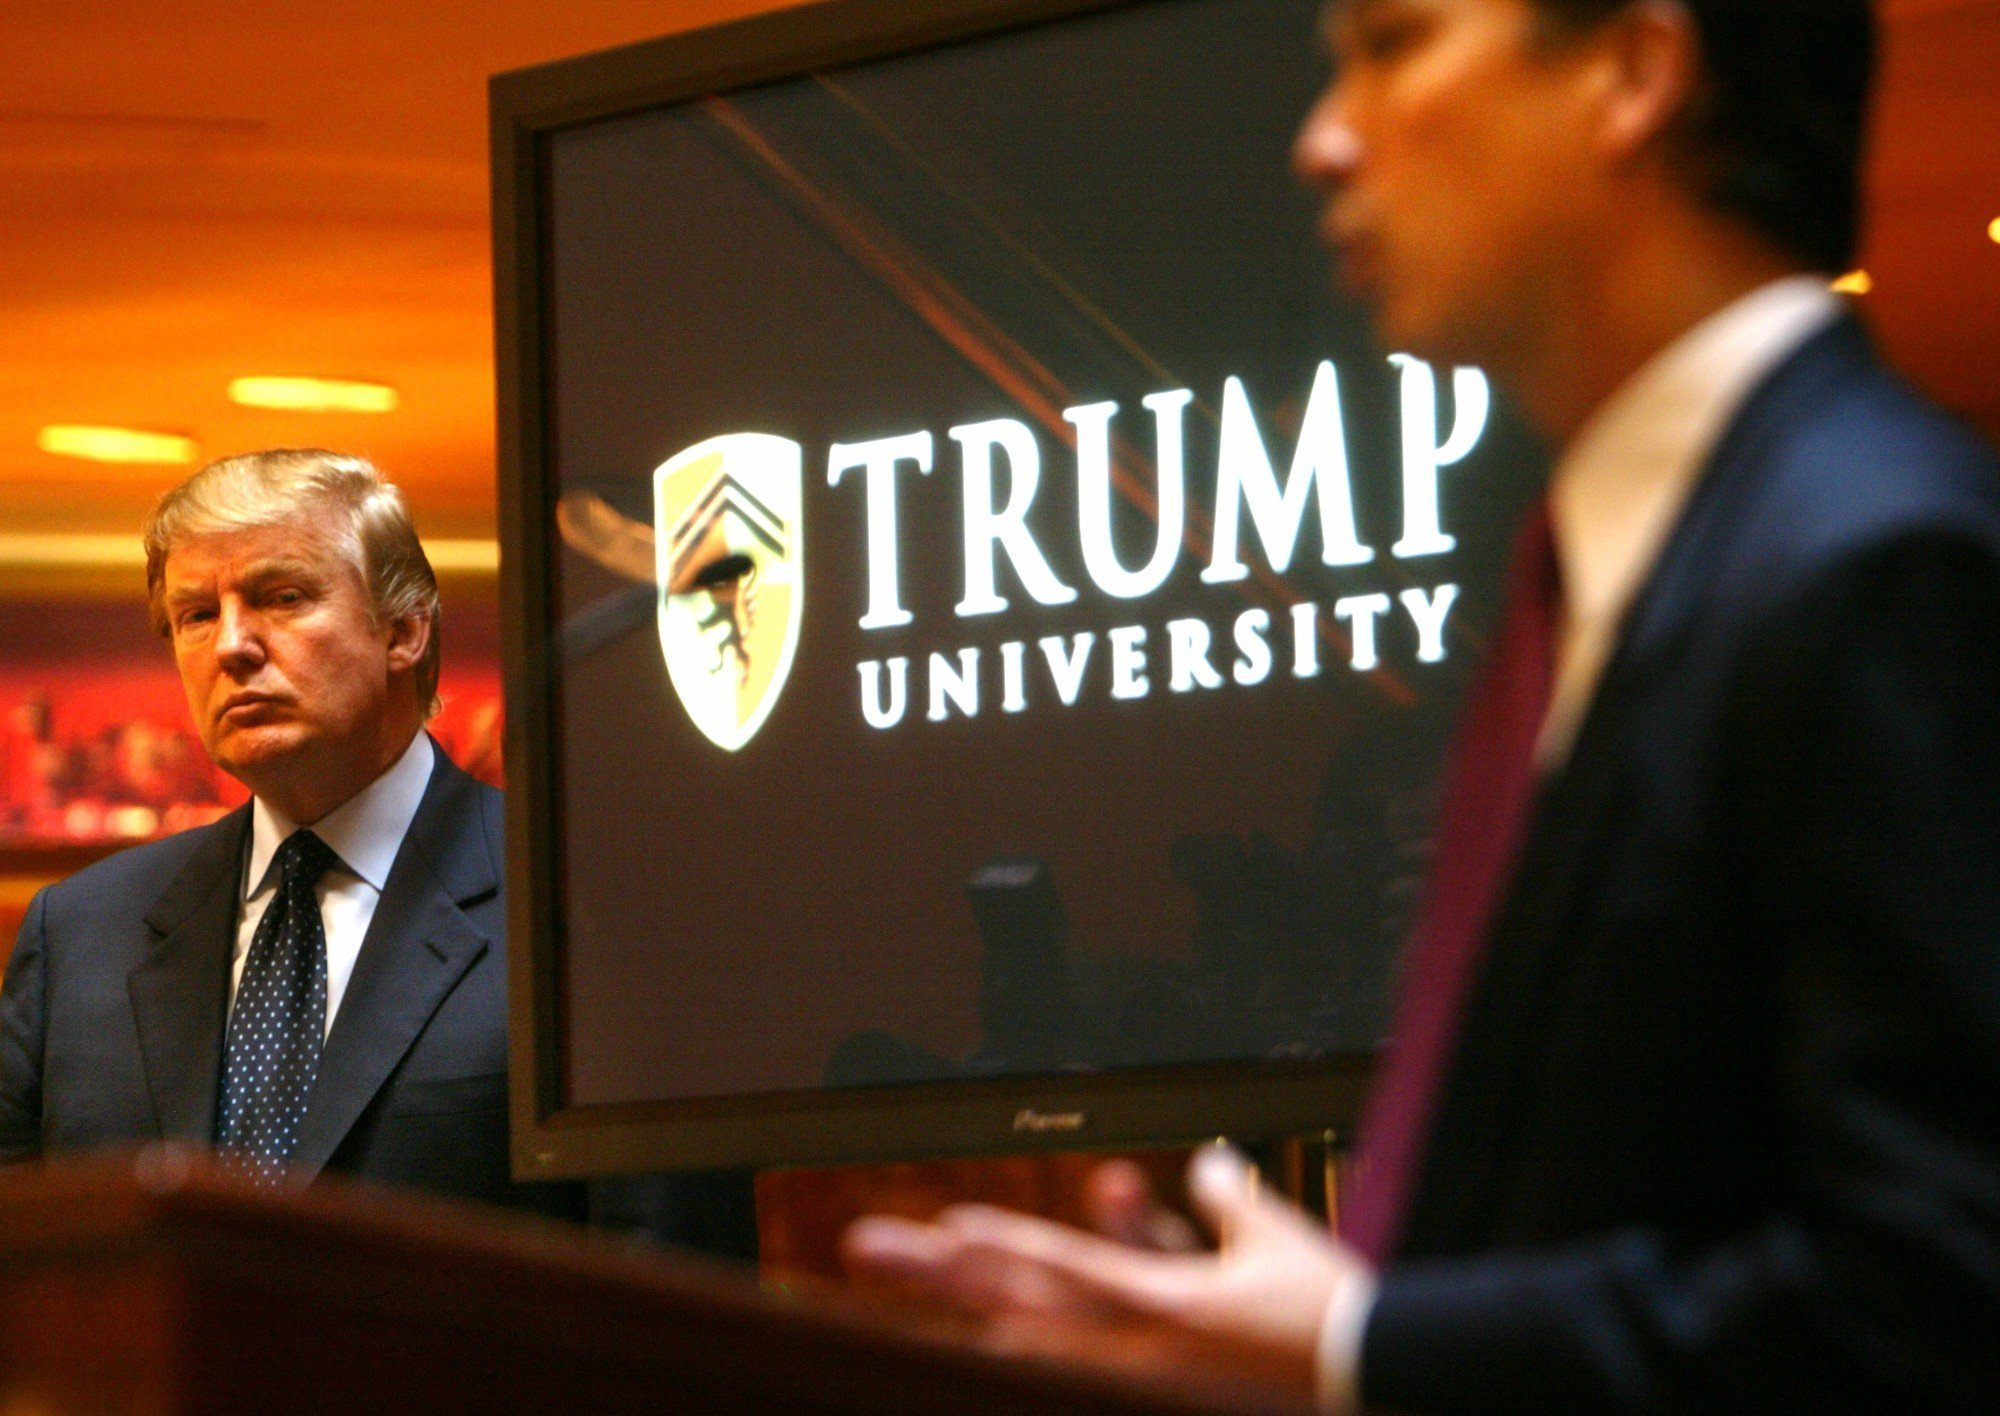 Former employees of Trump University say it's a 'total lie'